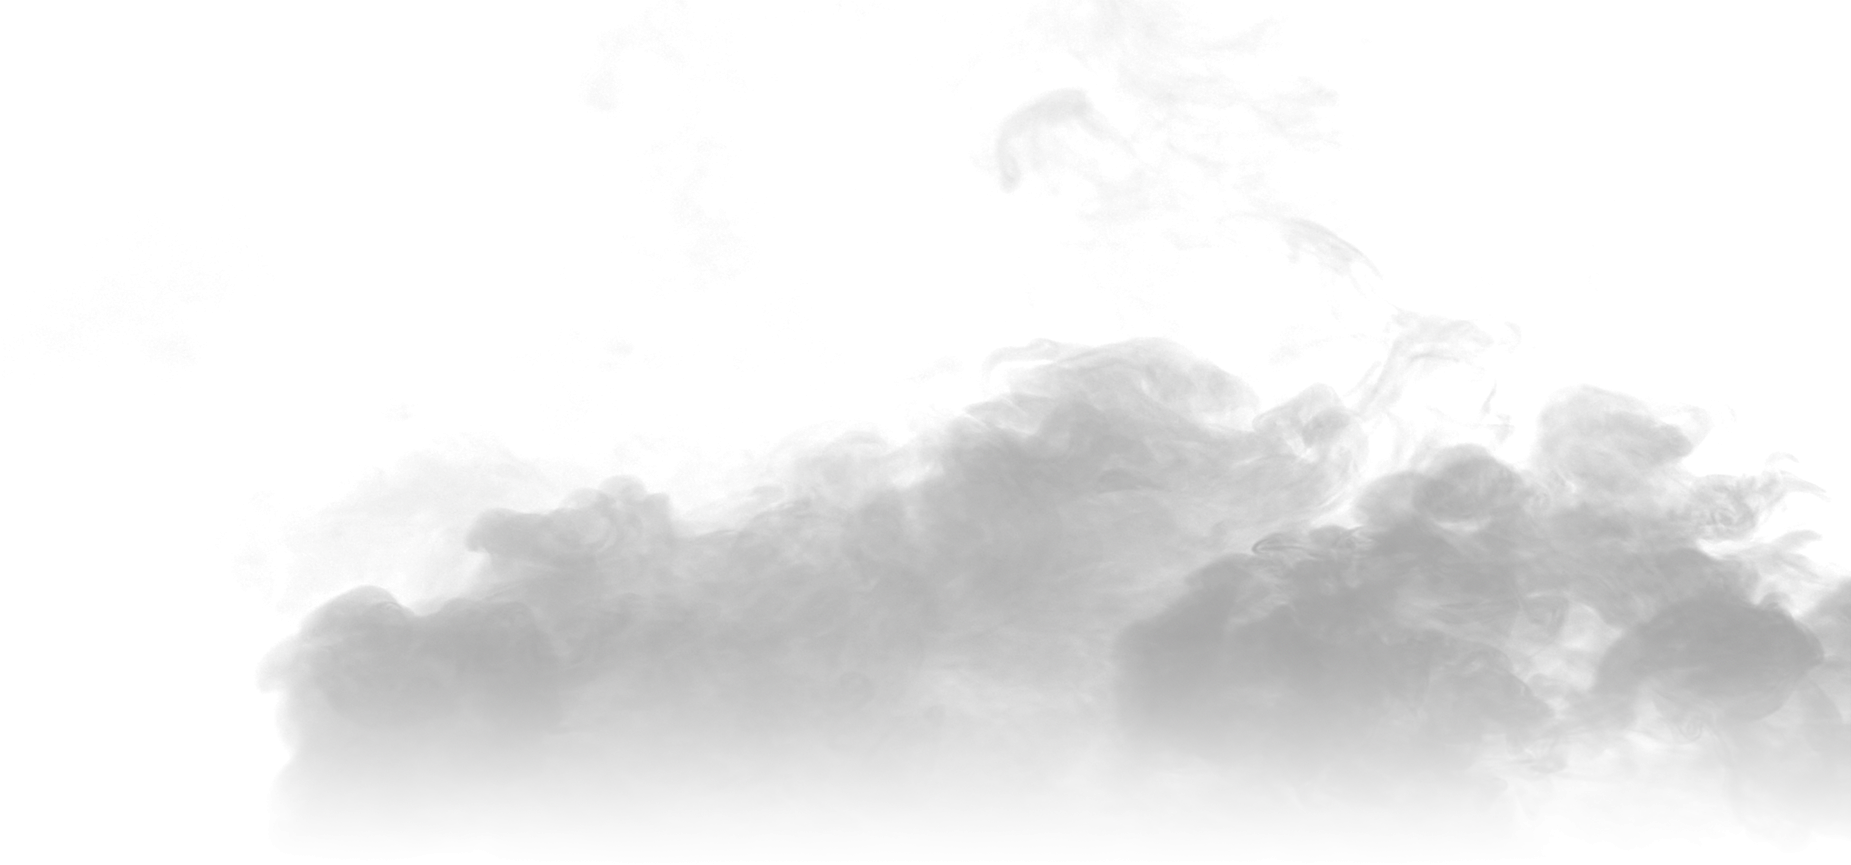 1559831138smoke-png-transparent-10.png